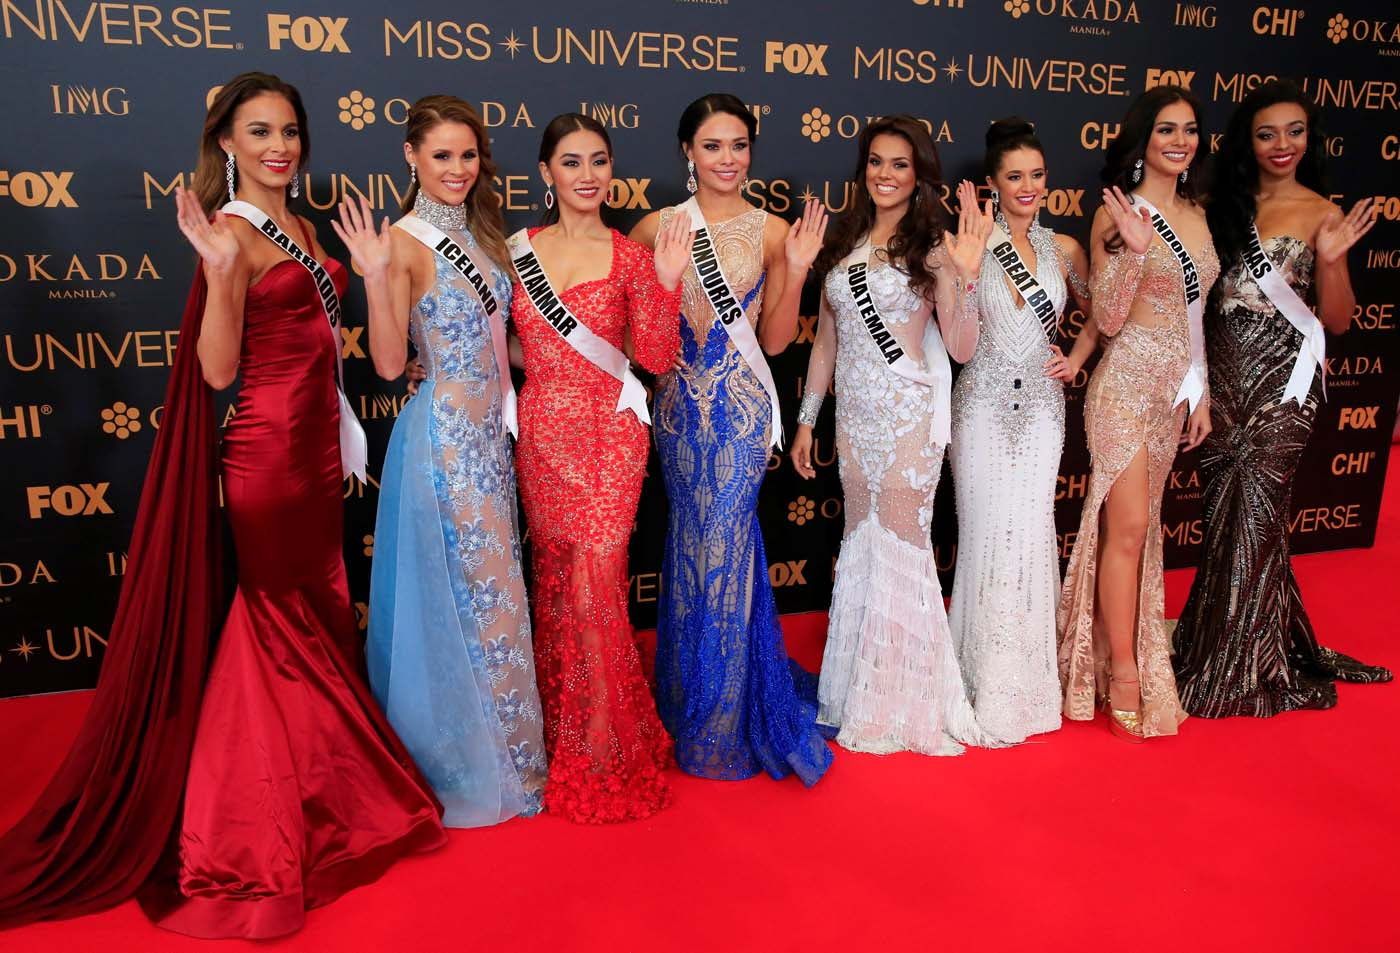 Miss Universe candidates gestures for a picture during a red carpet inside a SMX convention in metro Manila, Philippines January 29, 2017. In Photo from L-R: Miss Barbados Shannon Harris, Miss Iceland Hildur Maria Leifsdottir, Miss Myanmar Htet Htet Htun, Miss Honduras Sirey Moran, Miss Guatemala Virginia Argueta, Miss Great Britain Jaime-Lee Faulkner, Miss Indonesia Kezia Warouw and Miss Bahamas Cherell Williamson. REUTERS/Romeo Ranoco